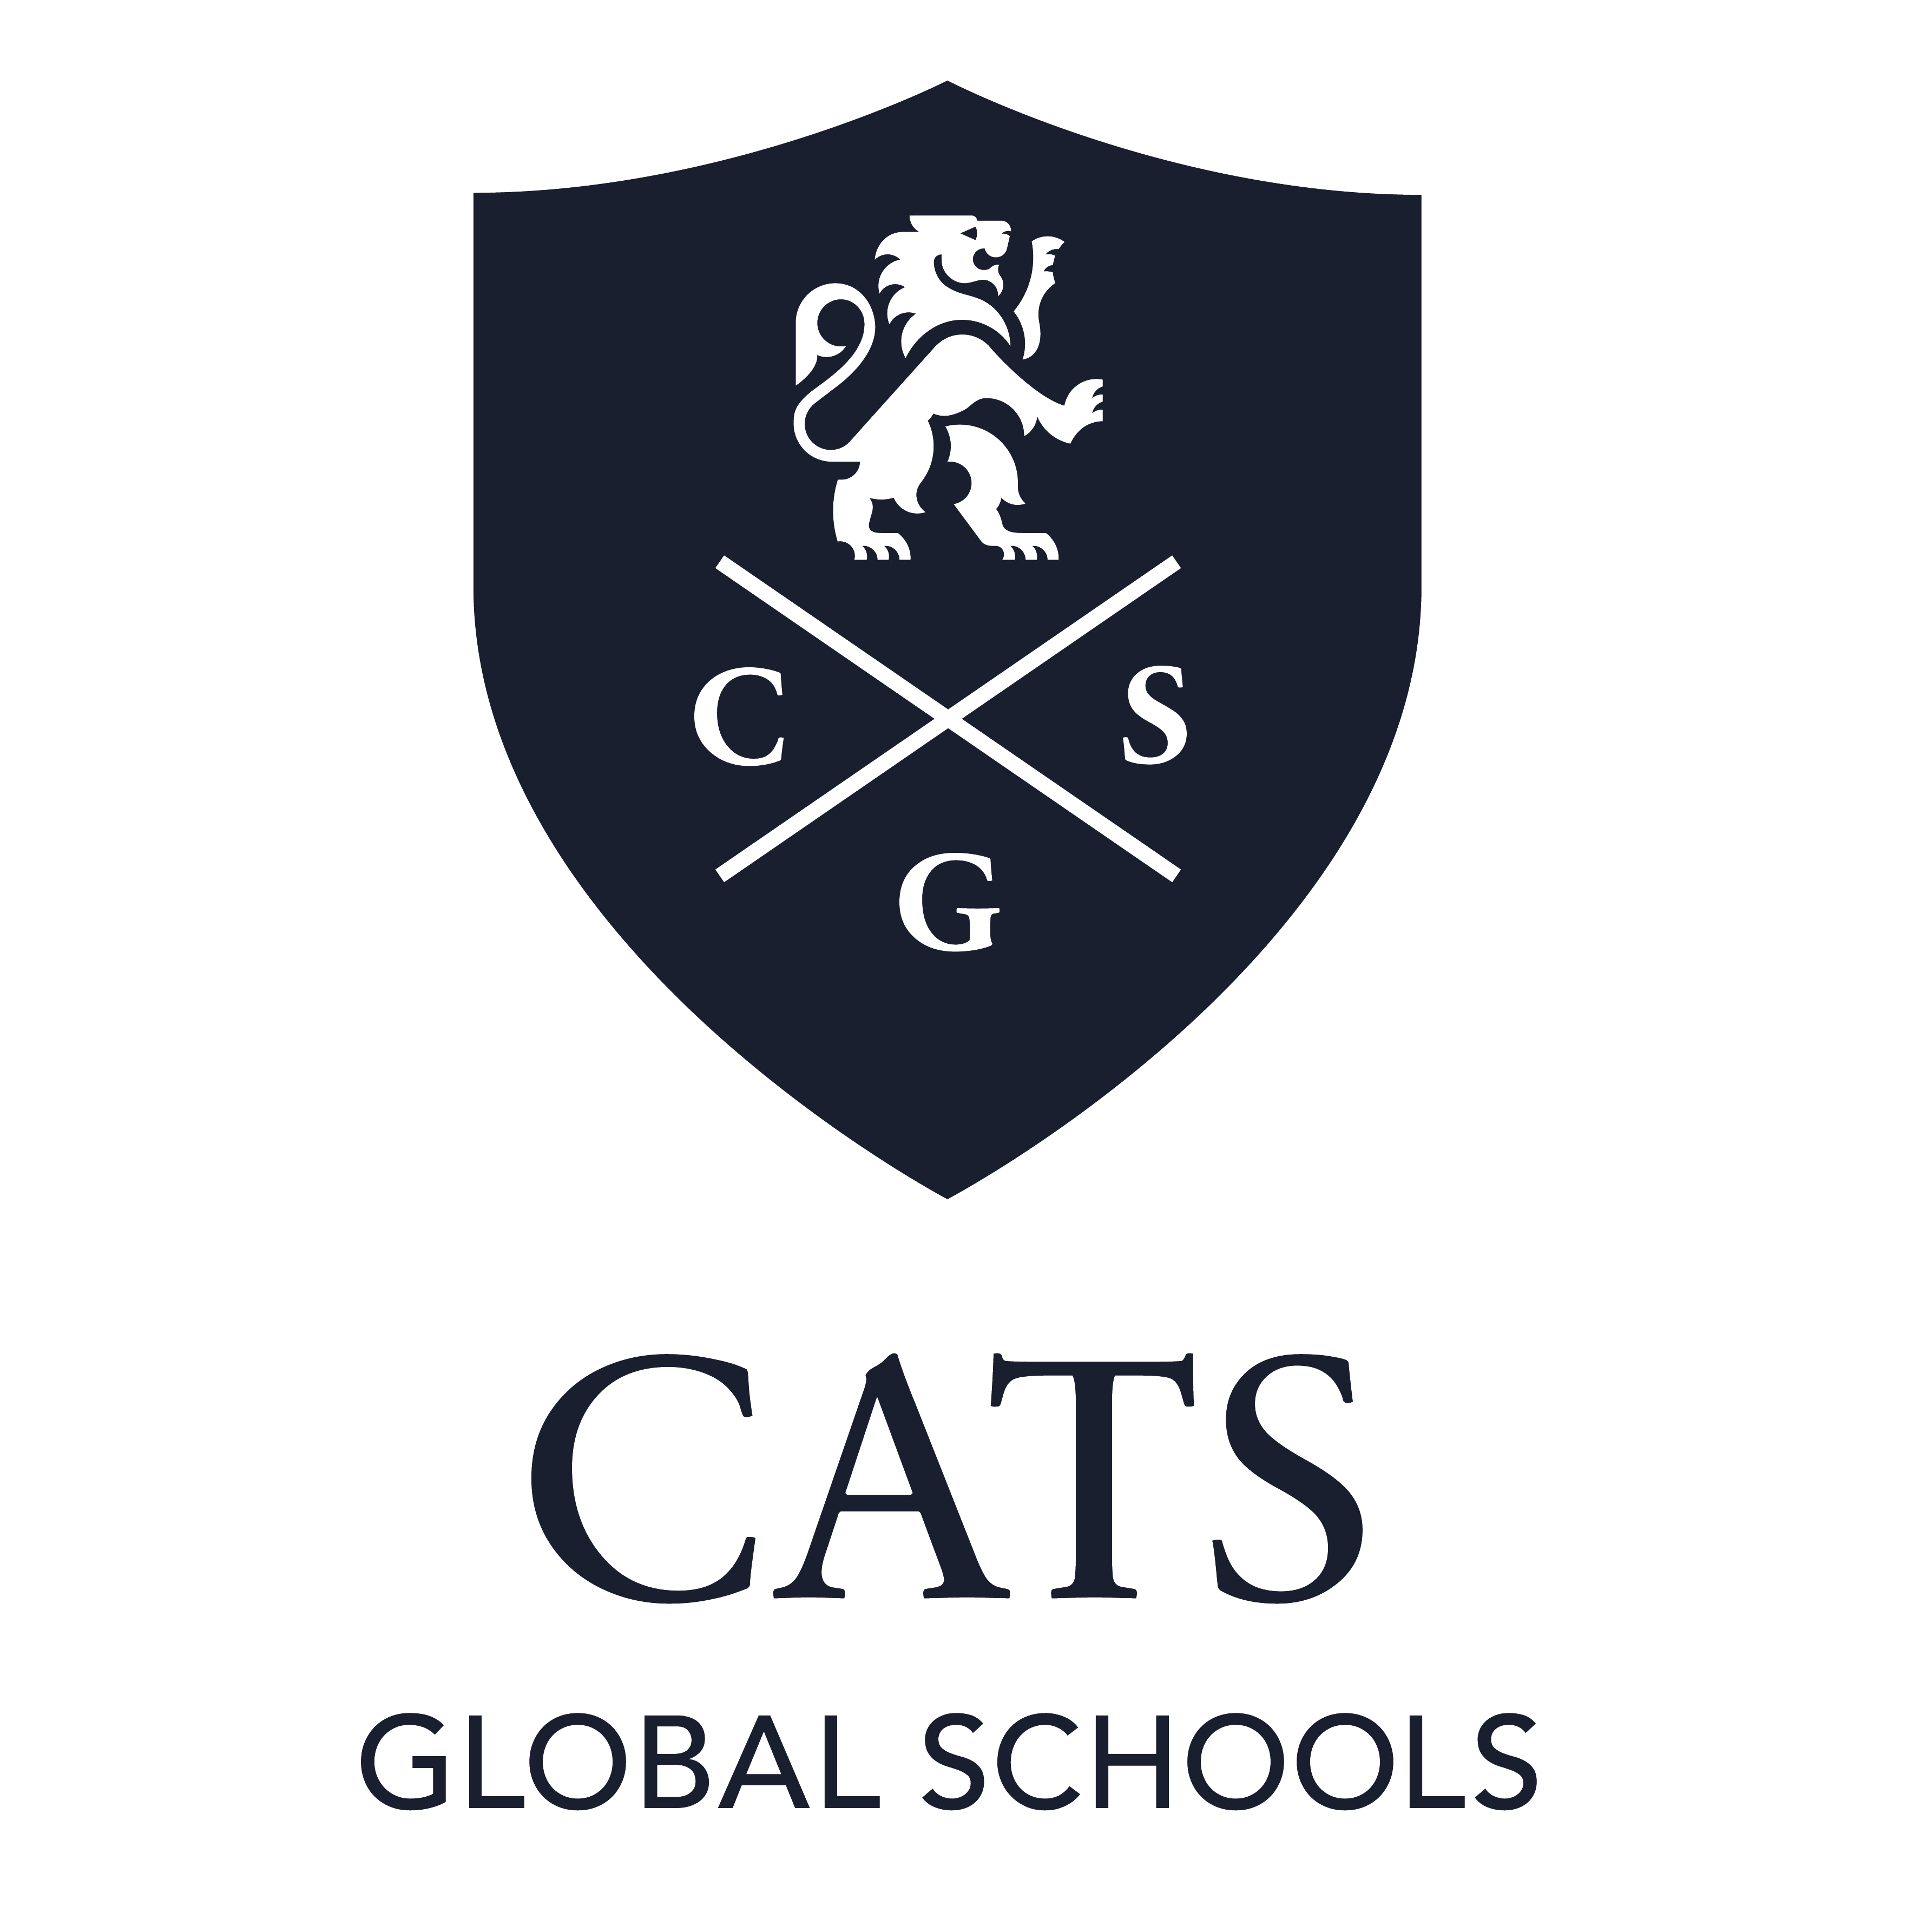 Cats Colleges (1)